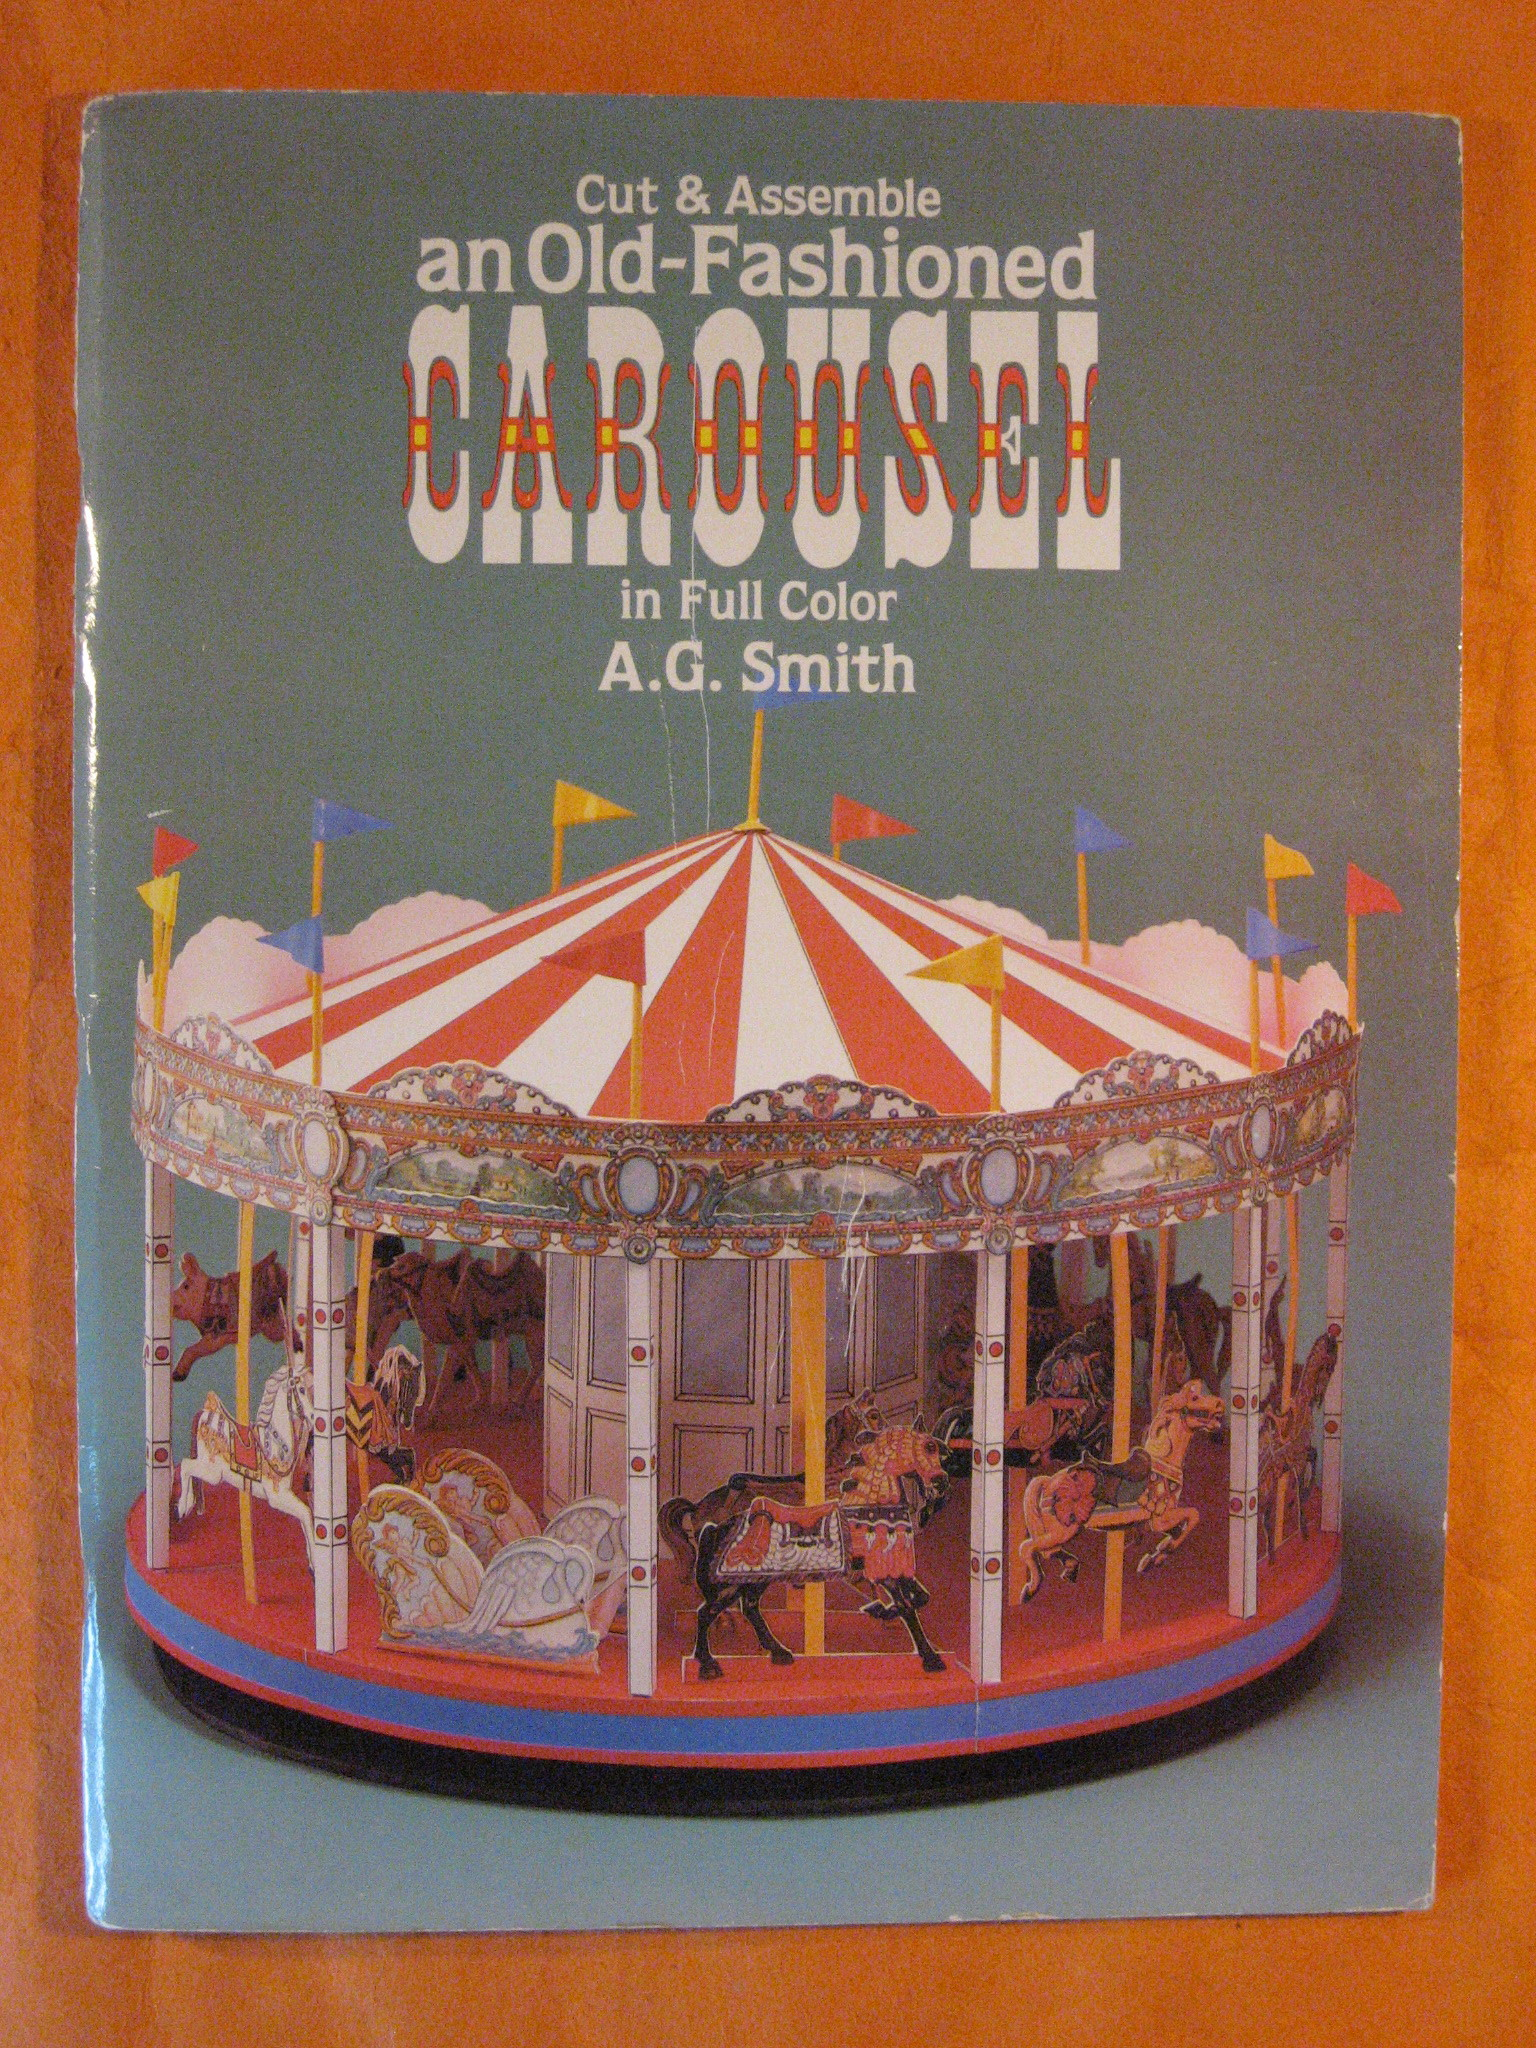 Cut & Assemble an Old-Fashioned Carousel in Full Color, Smith, A. G.